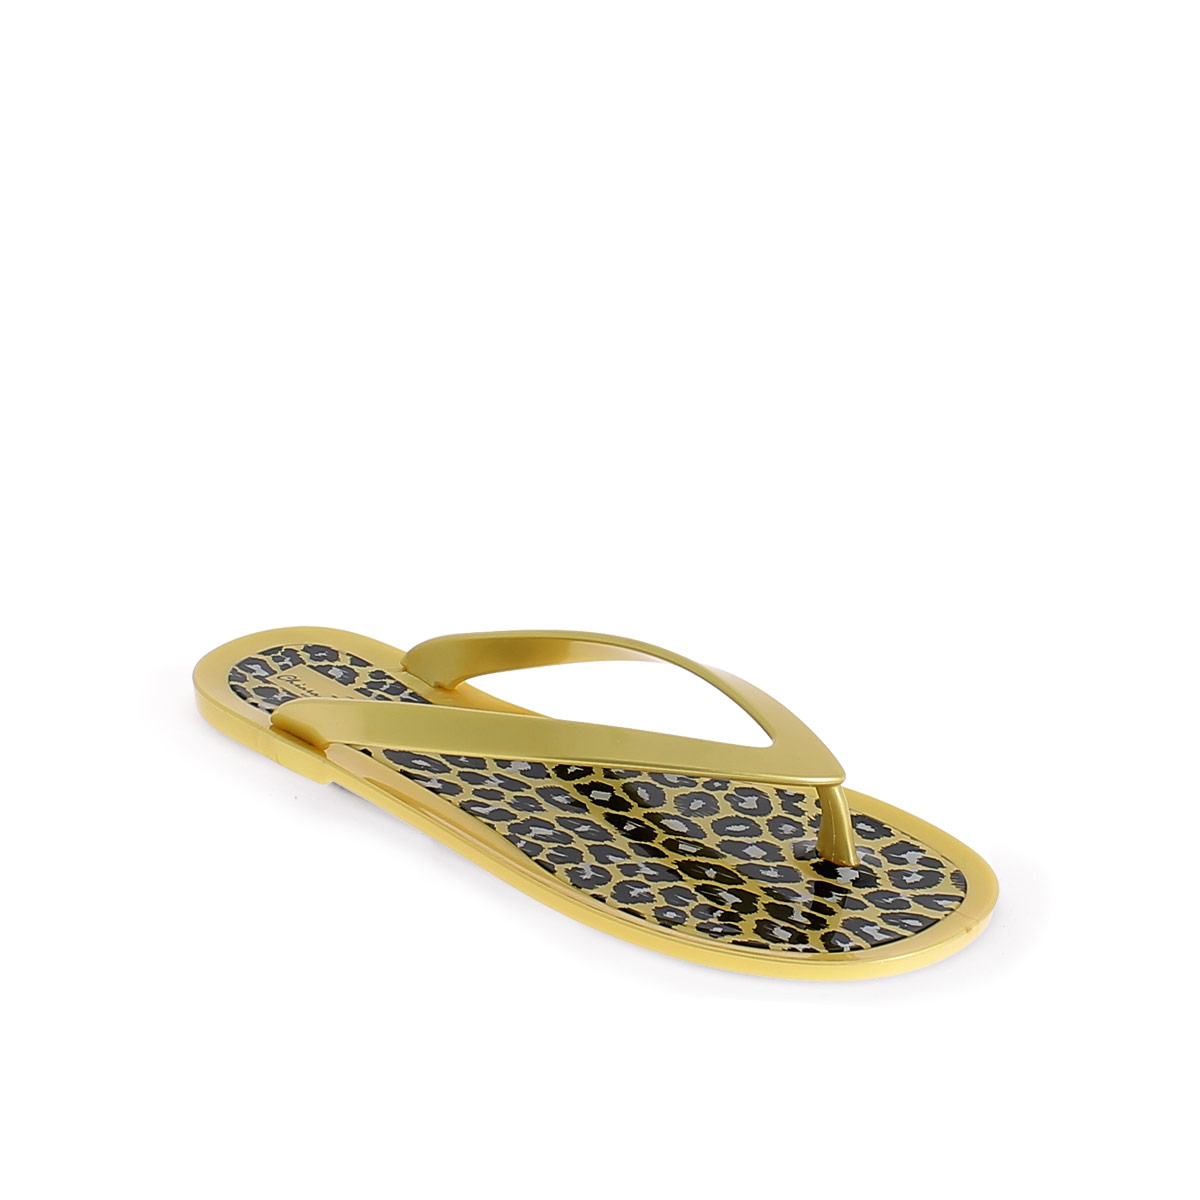 Pvc thong slipper with leopard printing insole